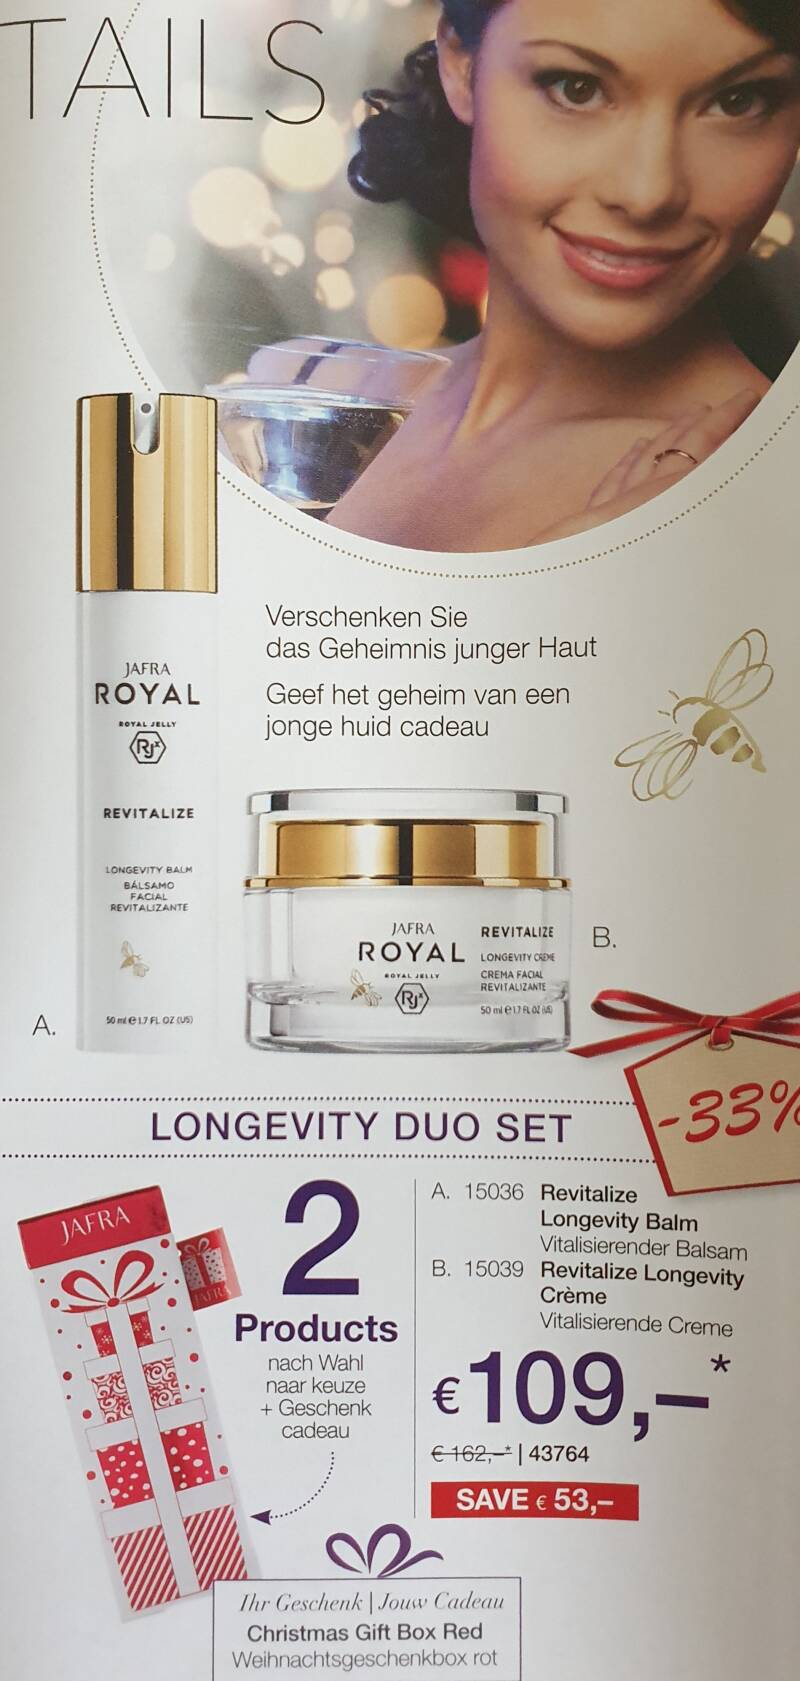 Revitalize longevity duo set